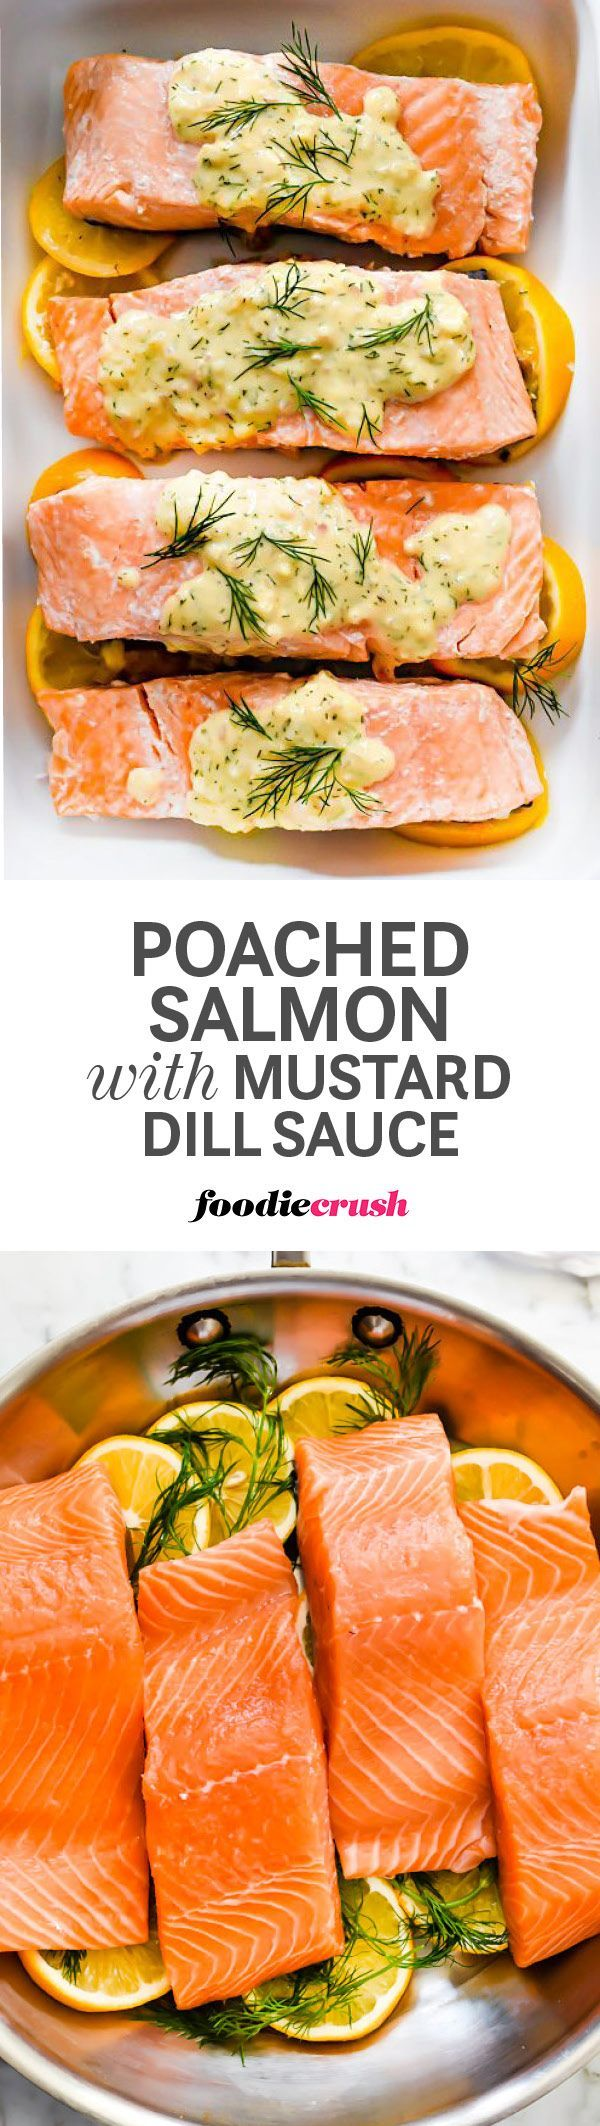 Poached in a lemon and herb flavored bath of white wine and water, this gently steamed salmon is ready for eating in just 15 minutes or less. Save the poaching liquid and add Dijon mustard, sour cream, and a few pats of butter for the a sauce every one will love | foodiecrush.com #salmon #poachedsalmon